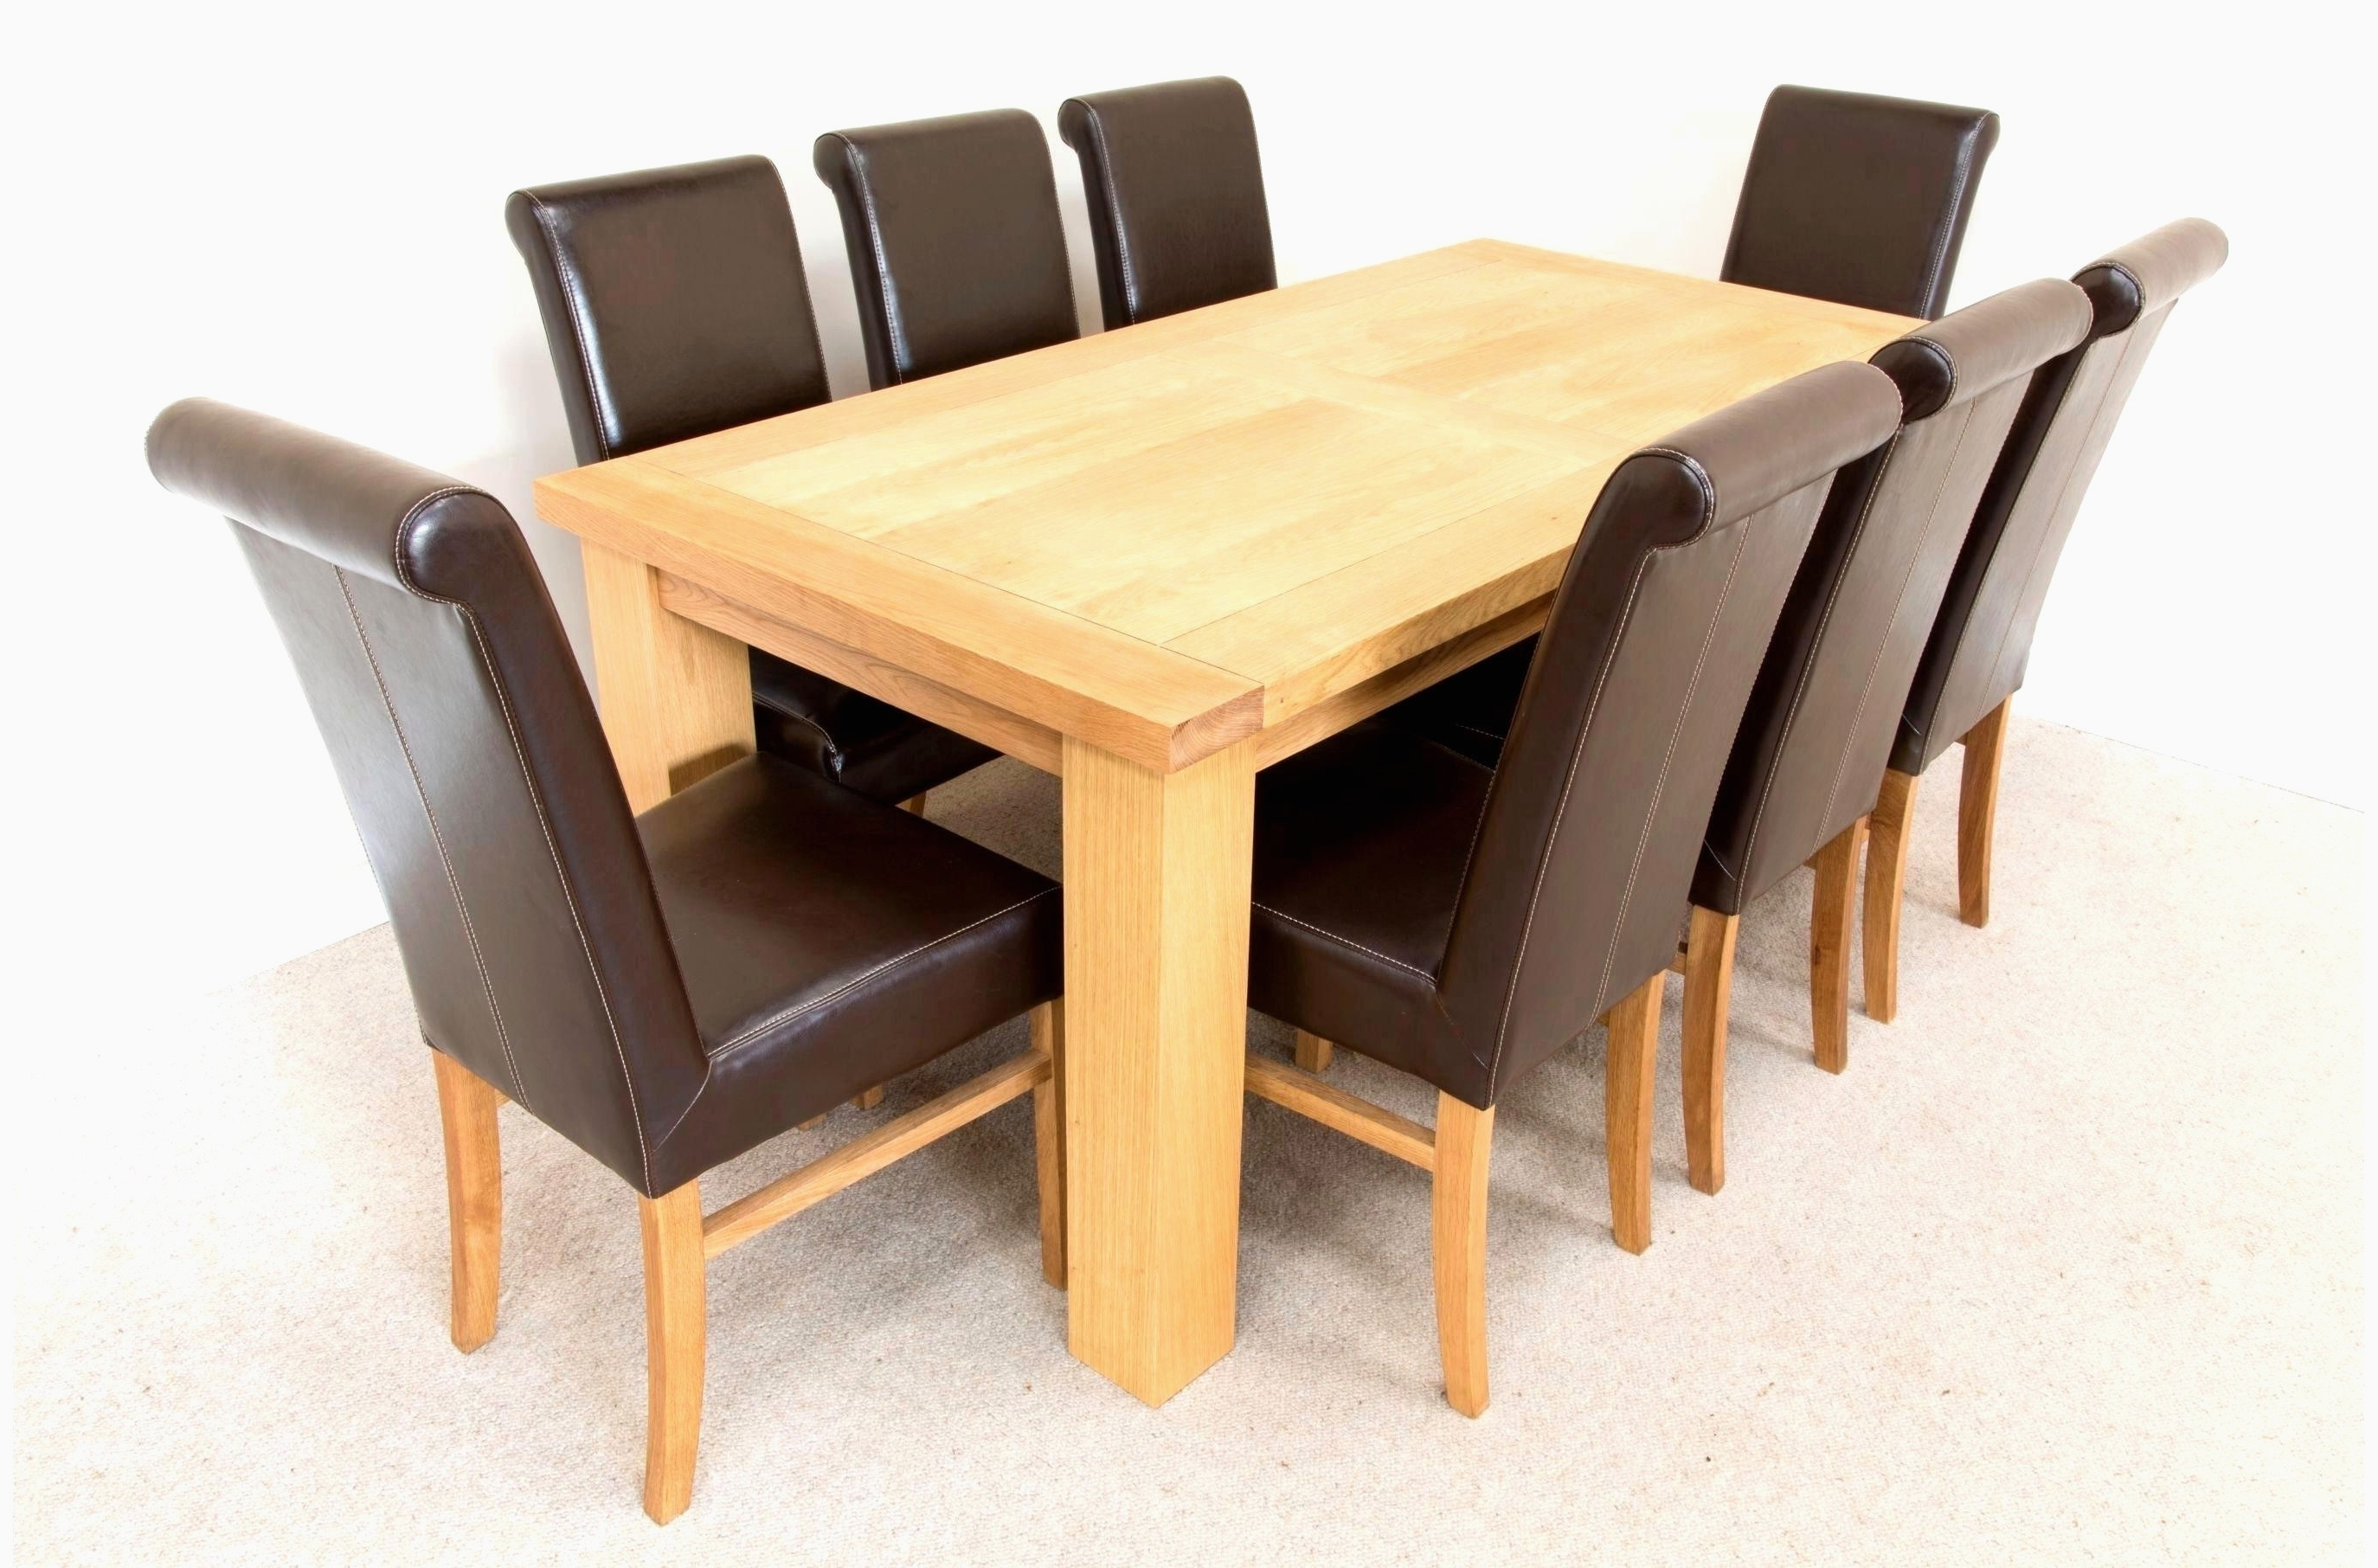 Famous Oak Dining Tables And 8 Chairs Pertaining To Solid Oak Dining Room Table And 8 Chairs Fresh 28 Classy Raw Wood (View 9 of 25)